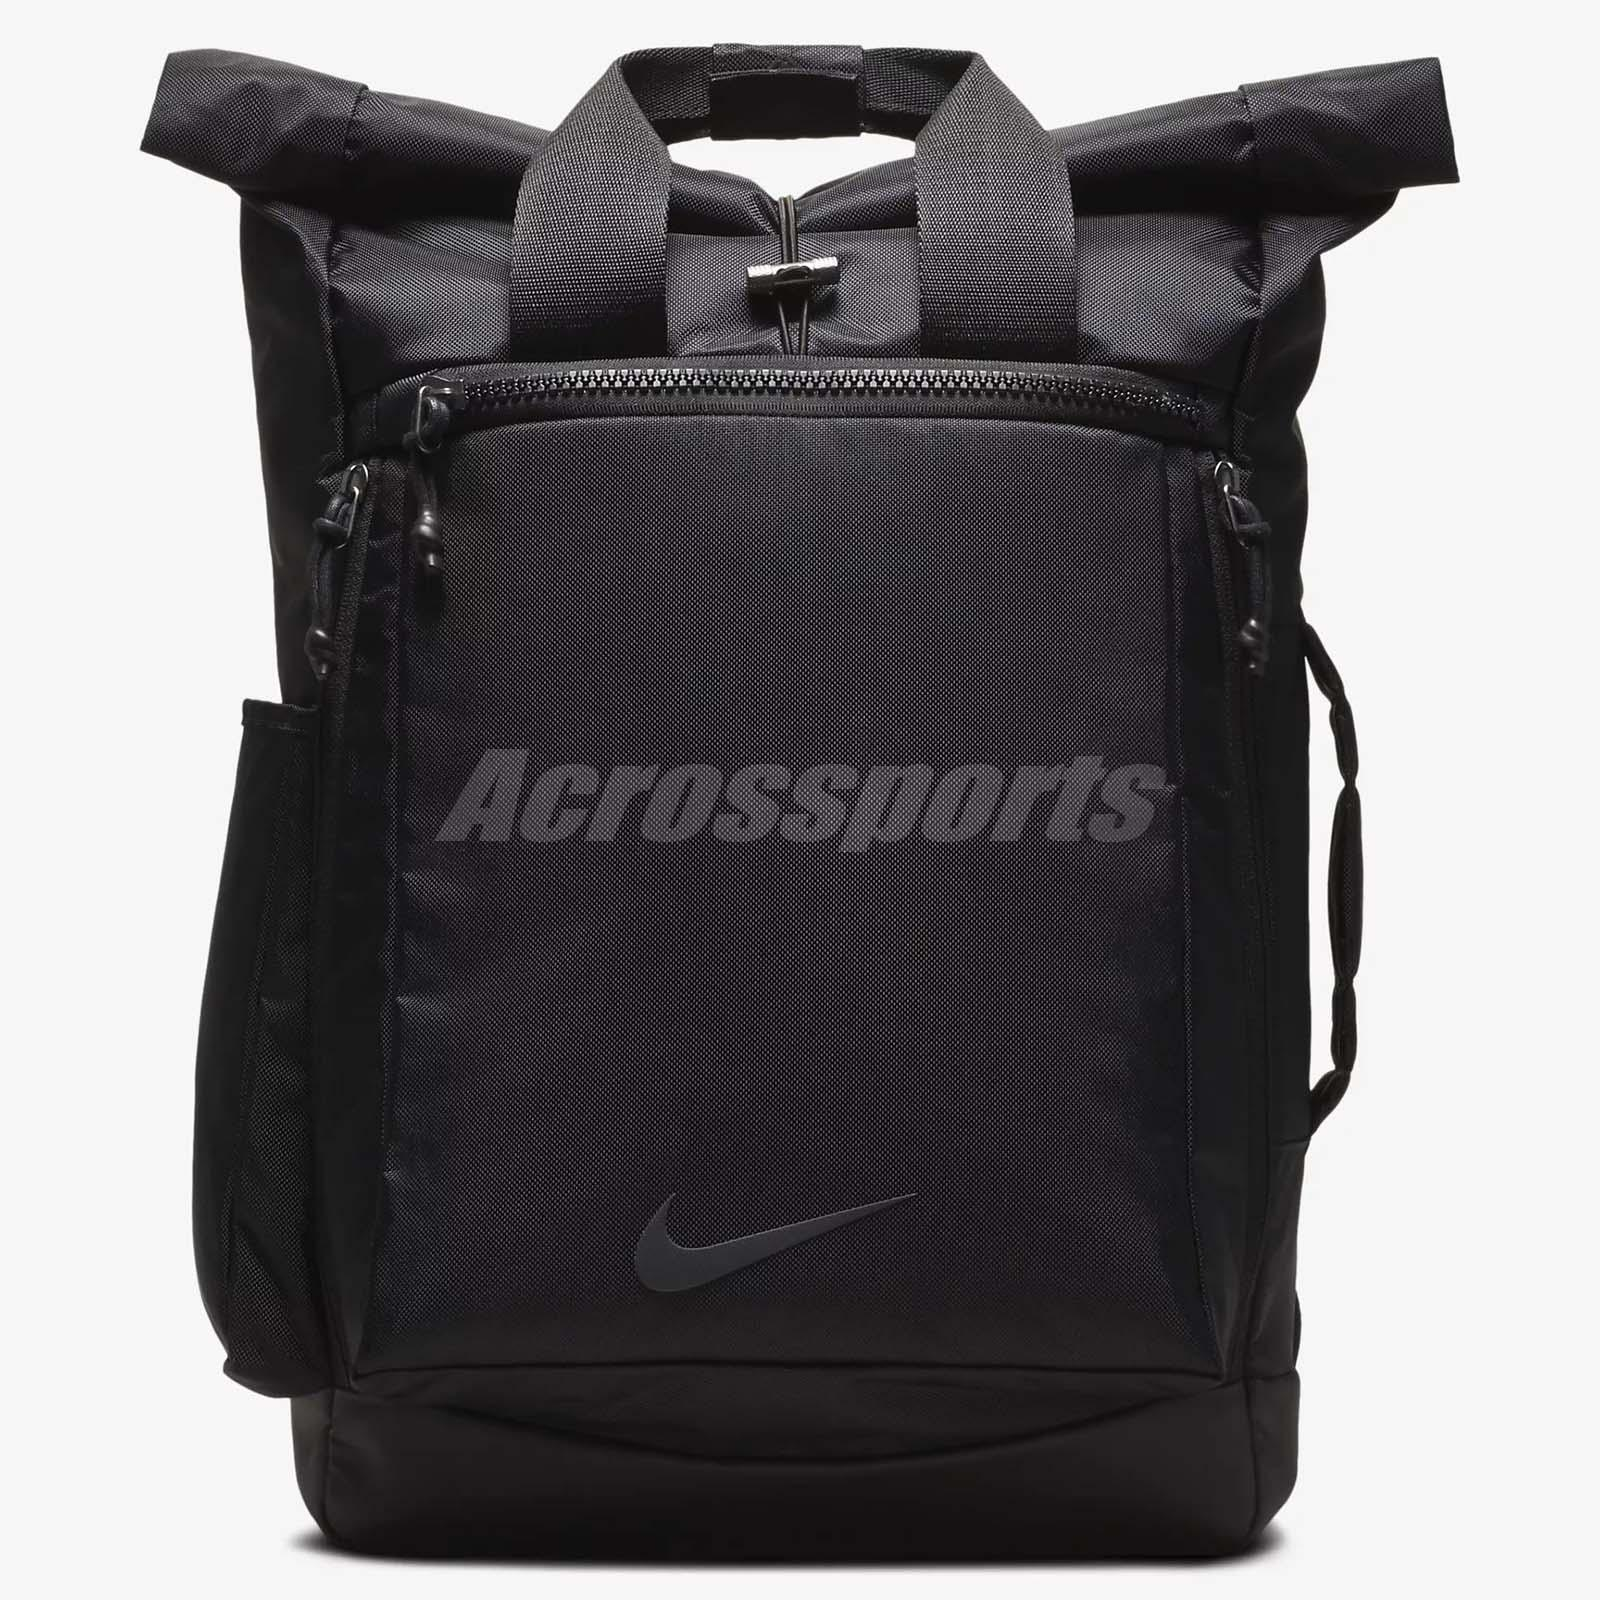 0a4942ede379 Nike Unisex Vapor Energy 2.0 Training Backpack Workout Gym Bag Black  BA5538-010